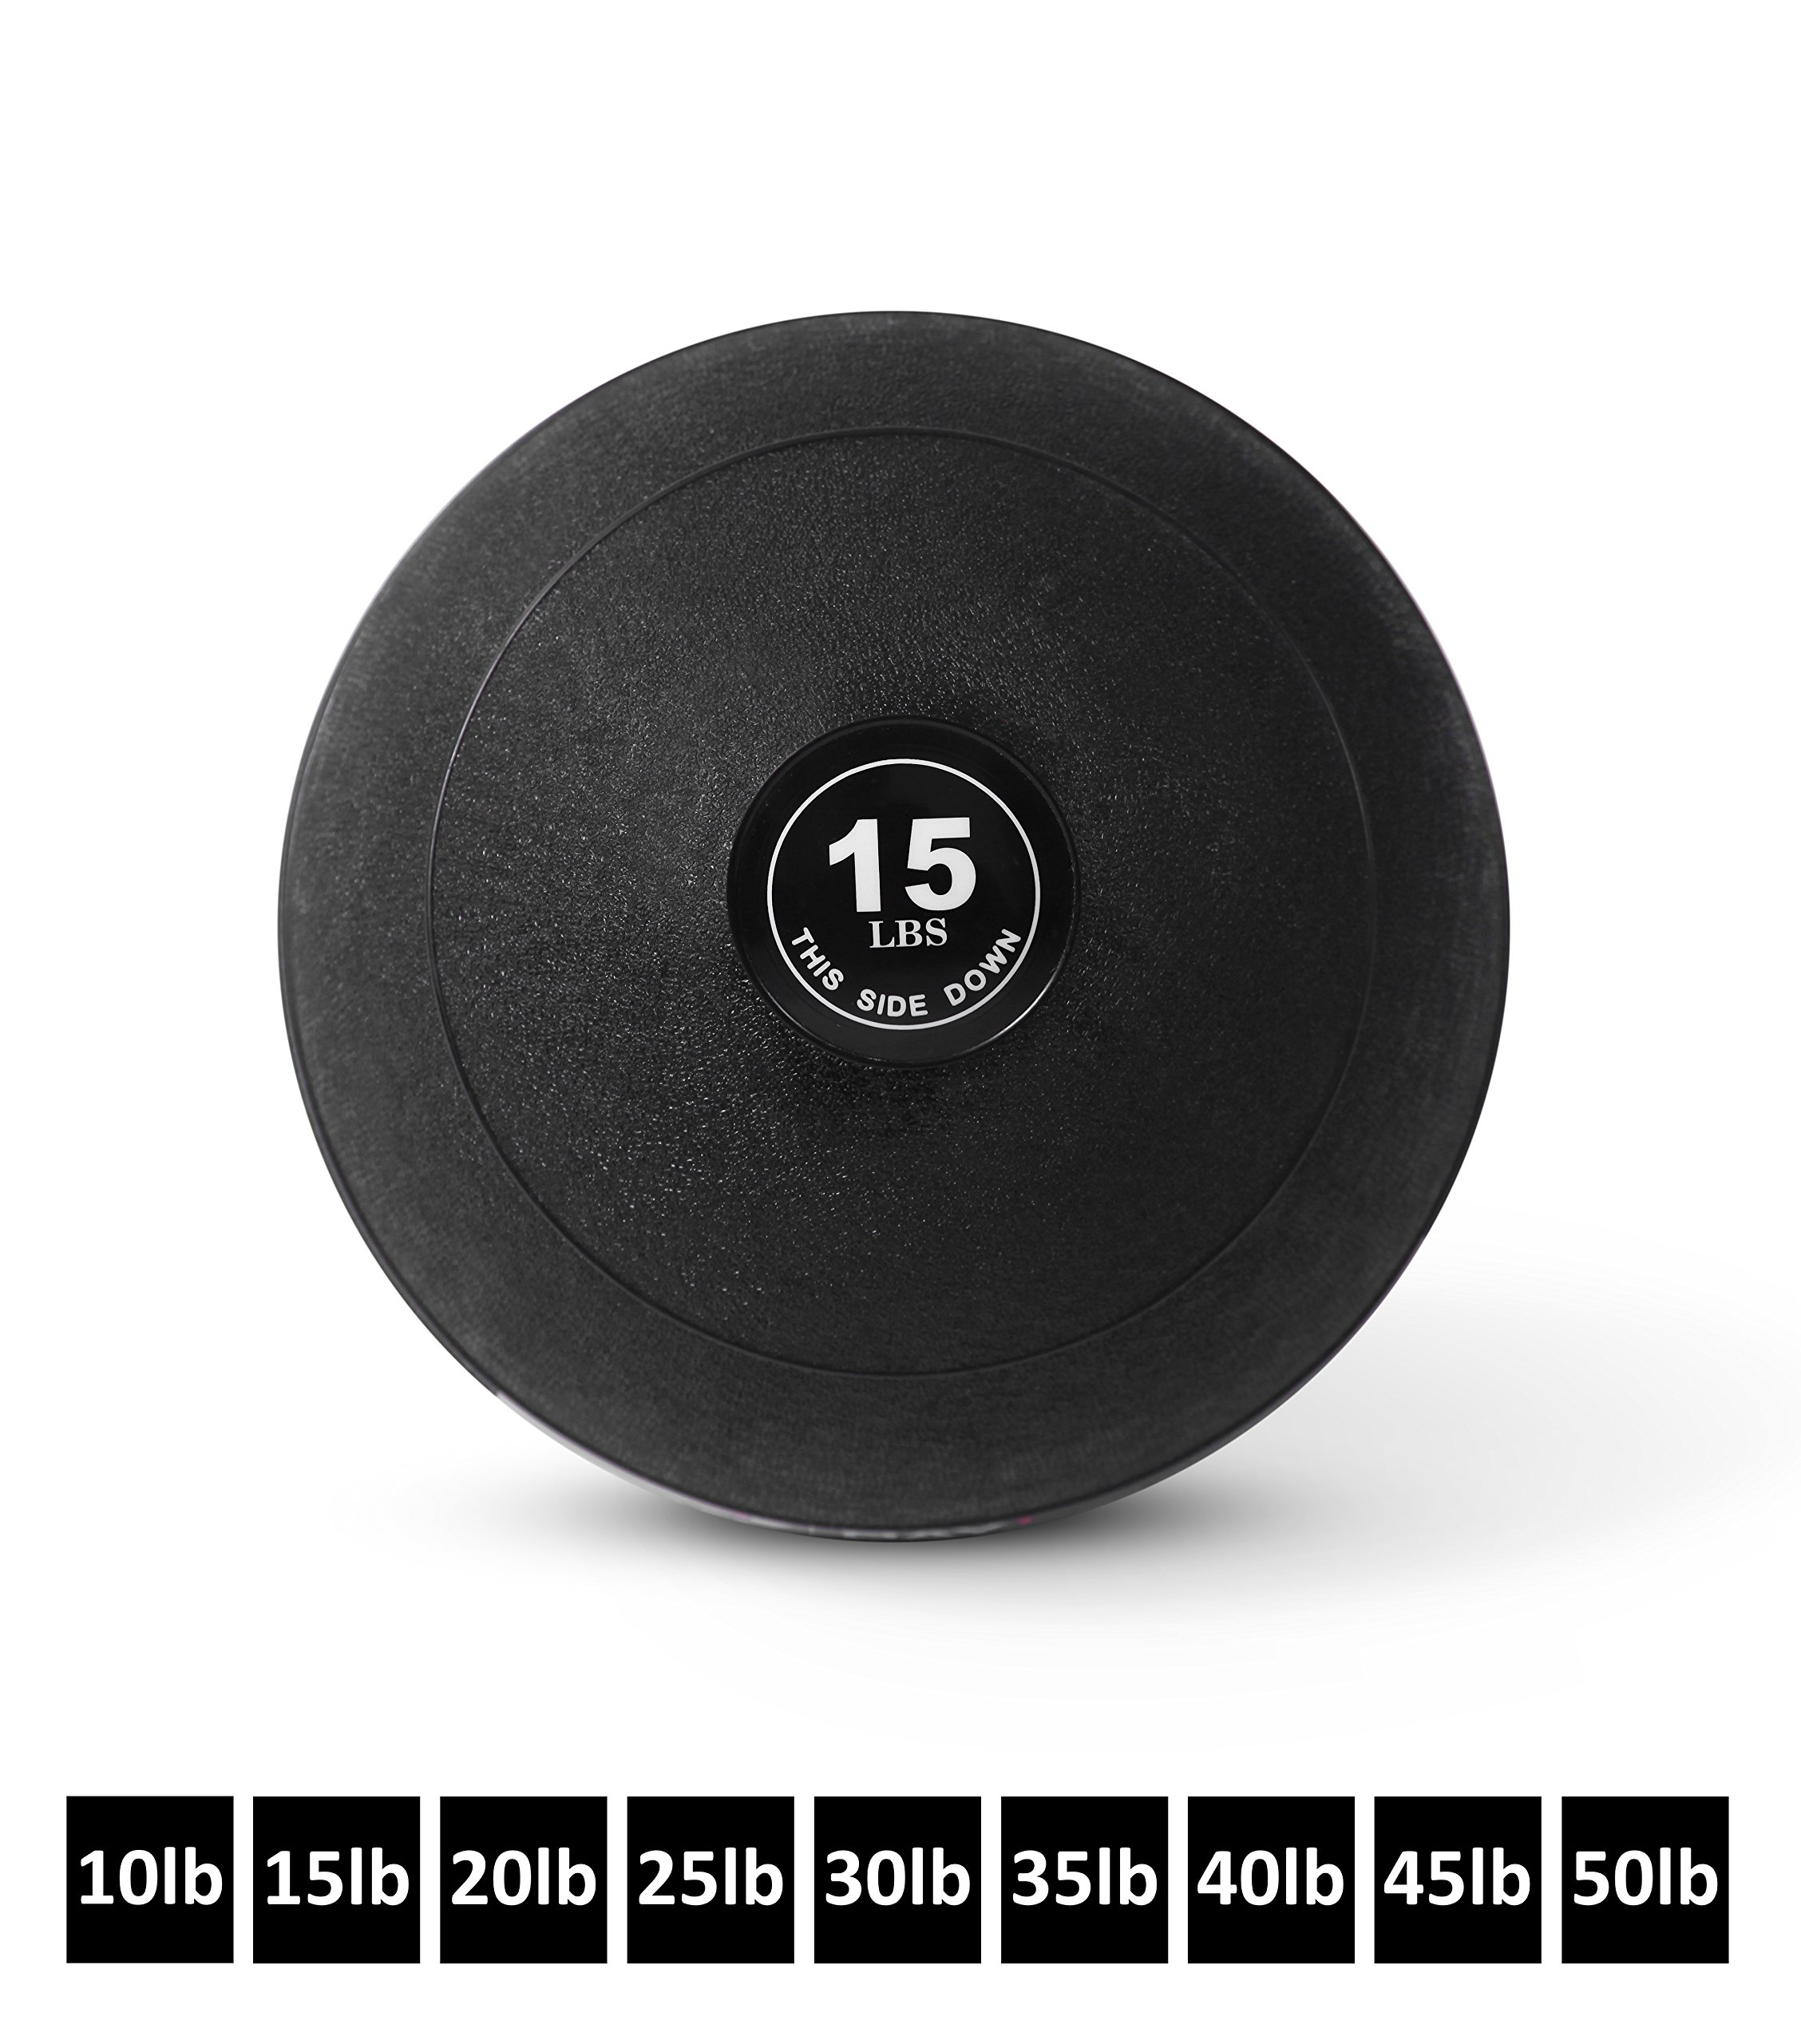 Weighted Slam Ball by Day 1 Fitness - 15 lbs - No Bounce Medicine Ball - Gym Equipment Accessories for High Intensity Exercise, Functional Strength Training, Cardio, CrossFit by Day 1 Fitness